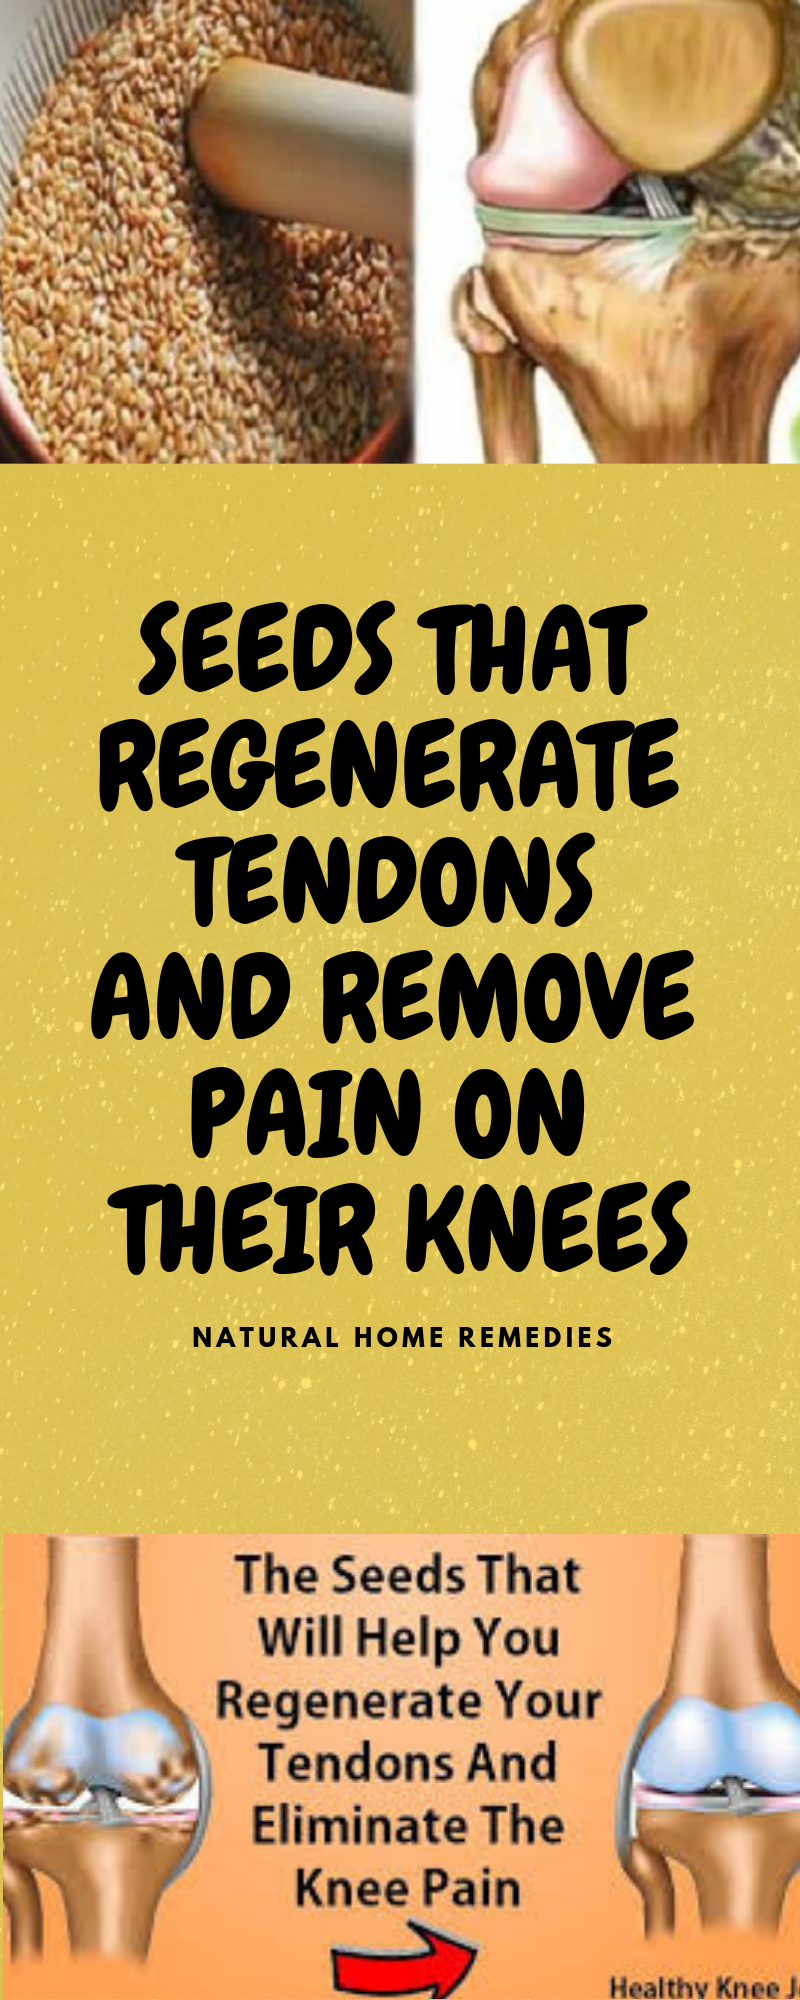 SEEDS THAT REGENERATE TENDONS AND REMOVE PAIN ON THEIR KNEES  #naturalcures